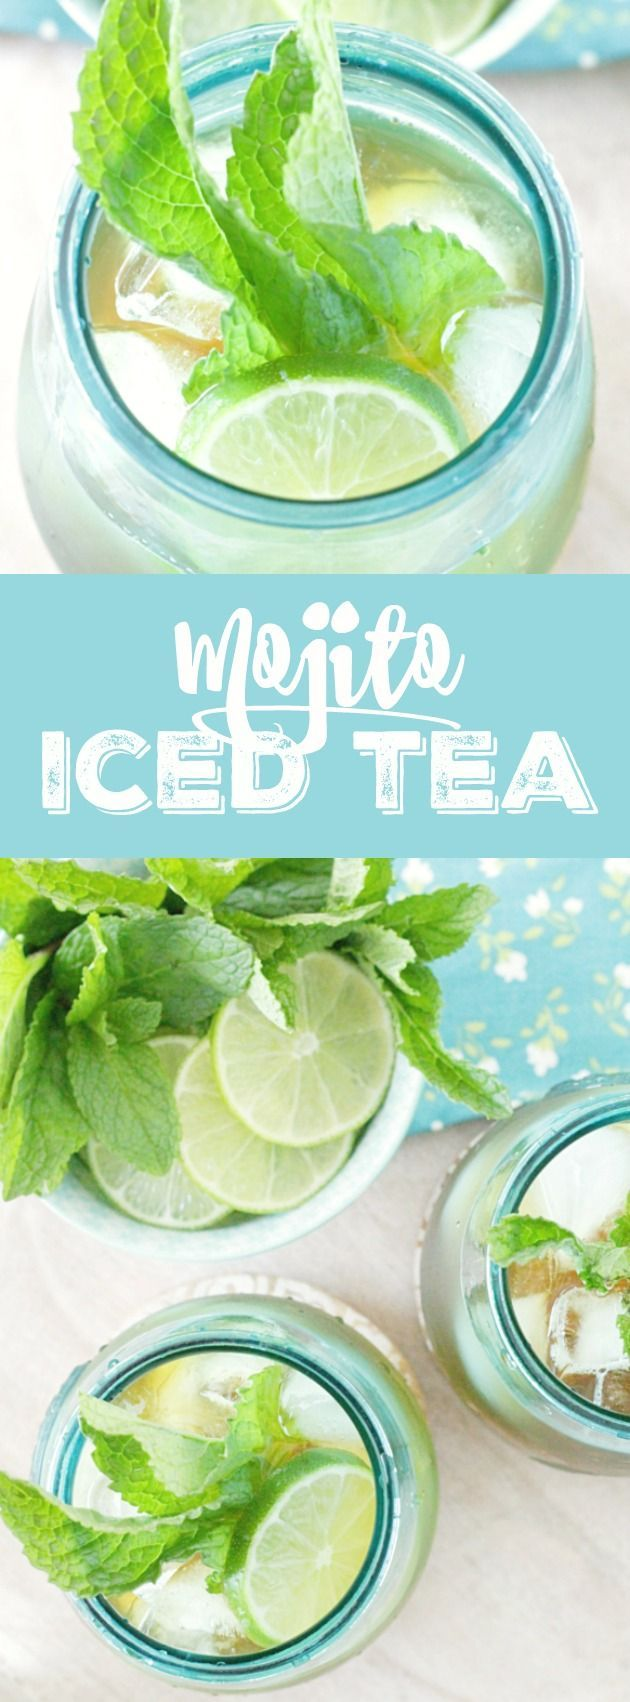 Mojito Iced Tea - brew lime tea, add lime & ice cubes, sweeten. optional: add lime juice. #summer drink recipe, easy #summercocktails